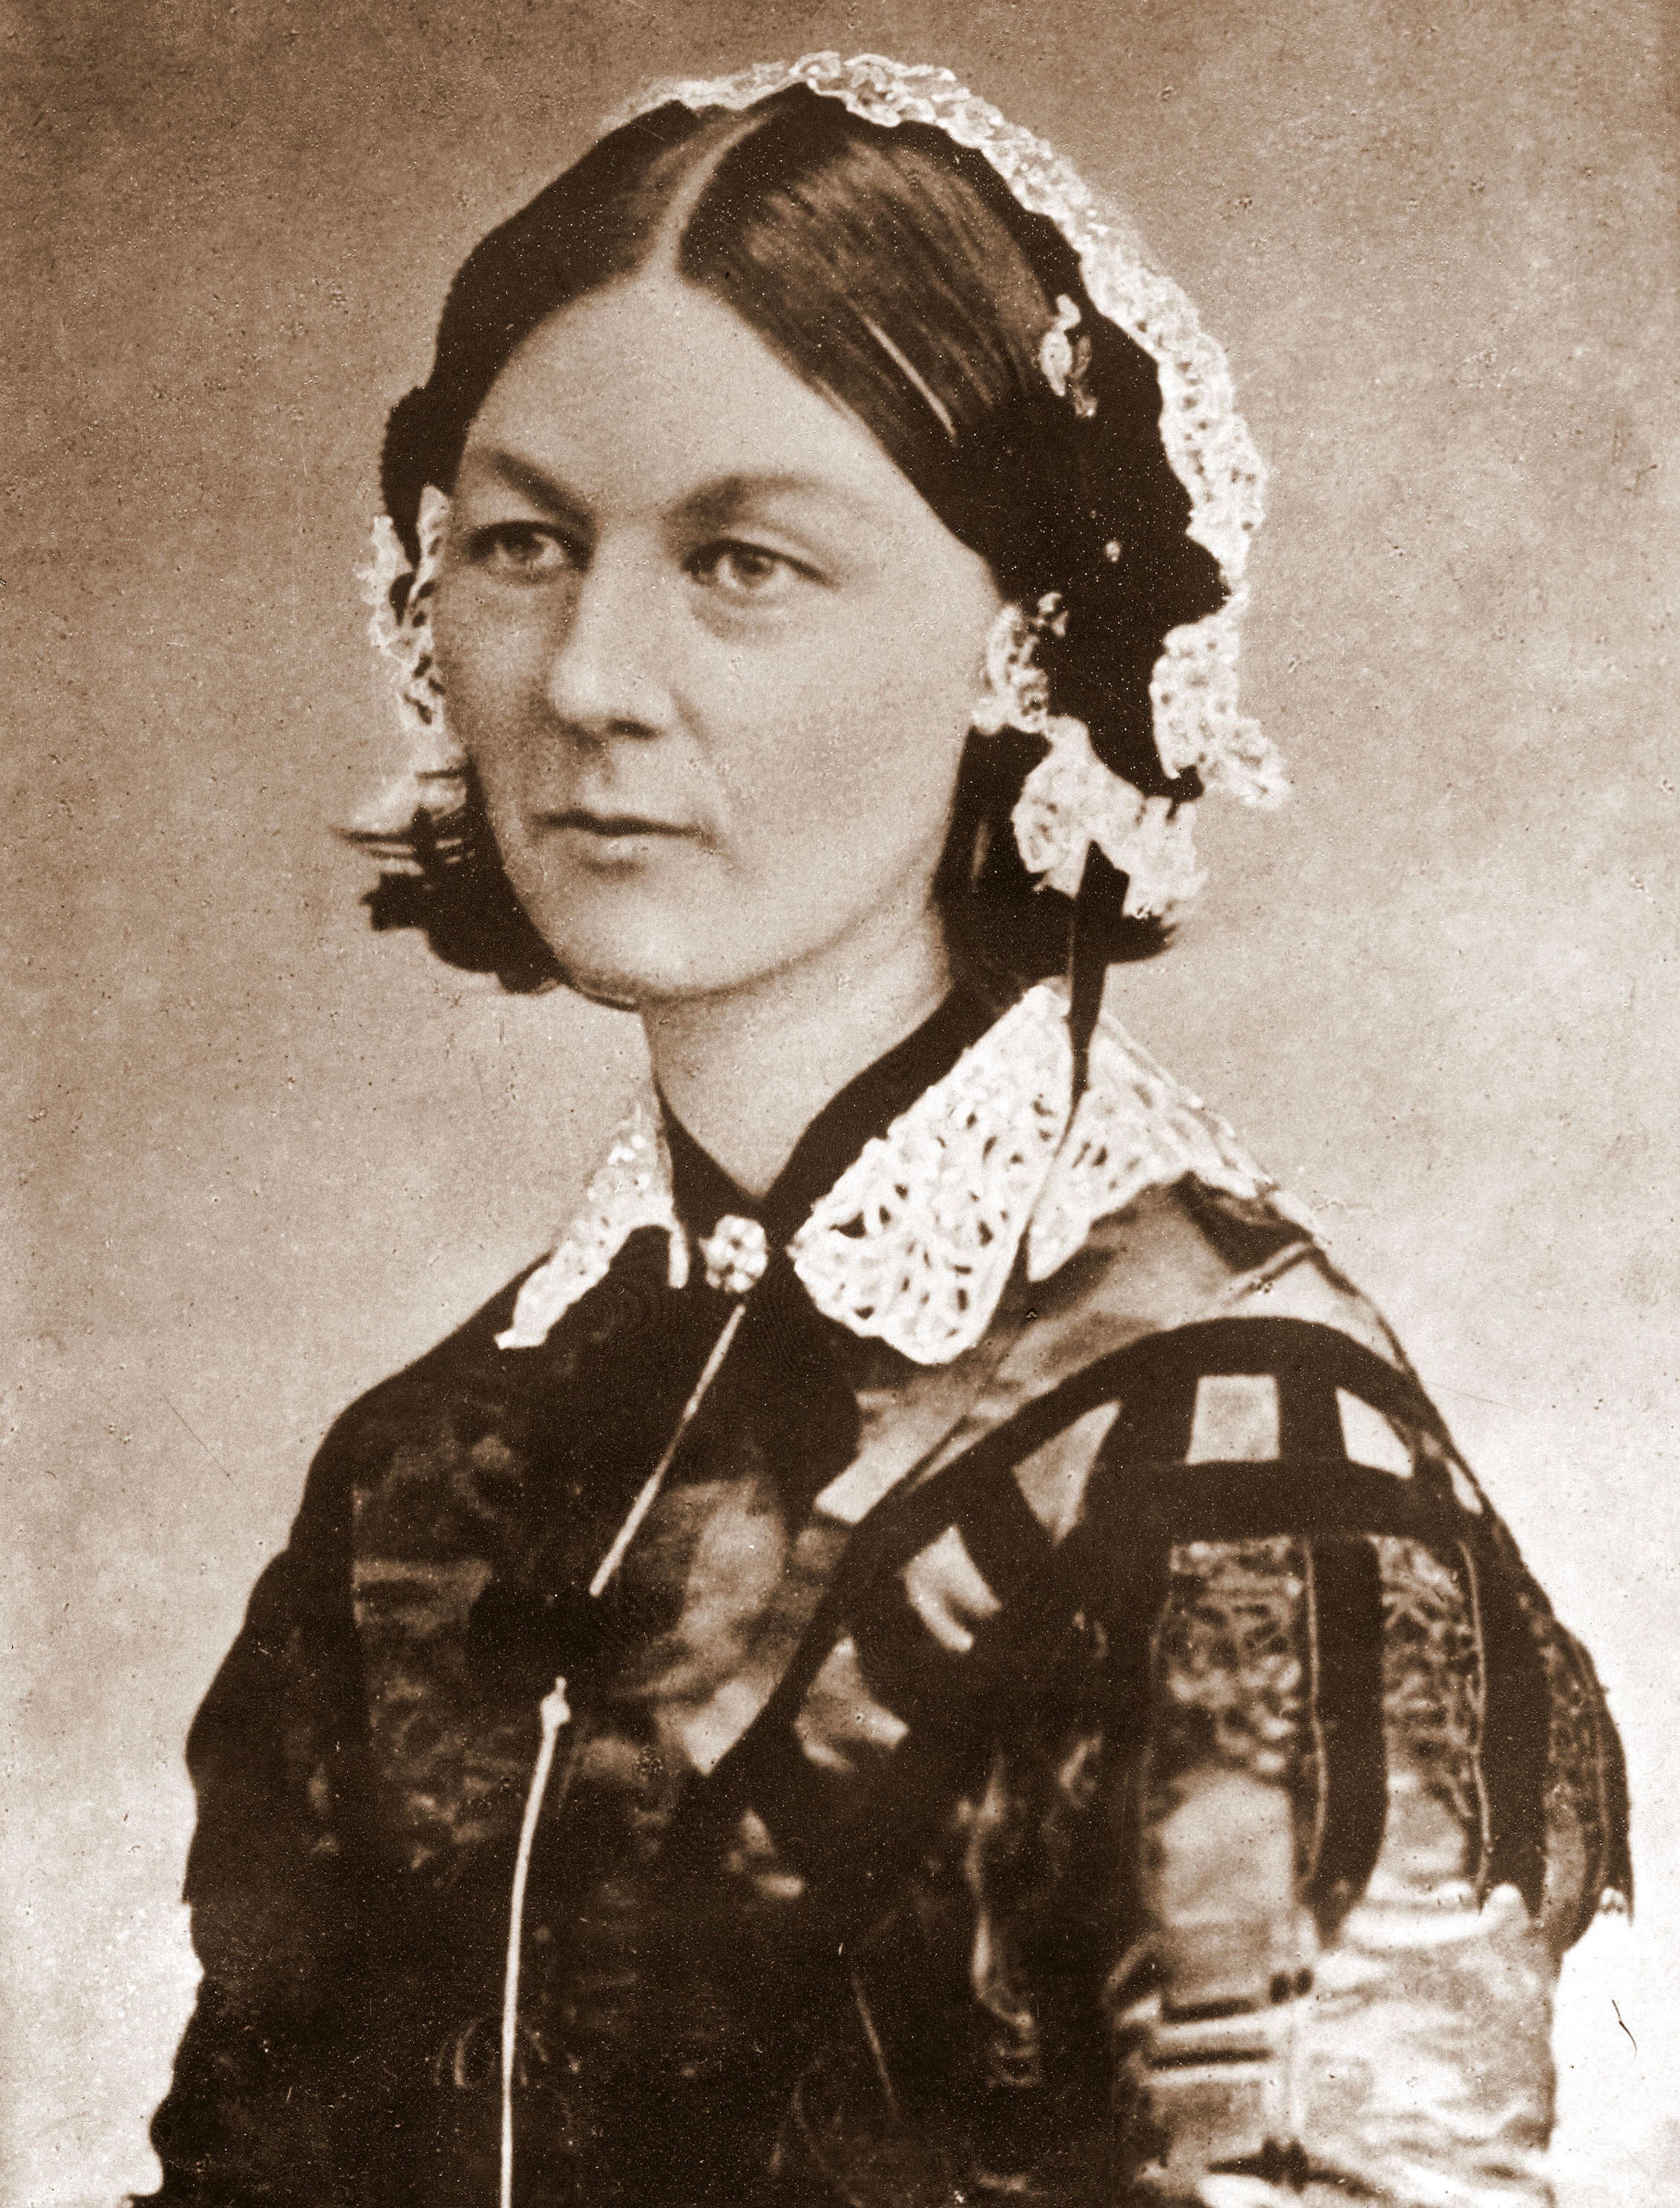 5 diseases acording to nightangle's environmental To analyze the environmental theory of florence nightingale based on the model   the results are shown and discussed according to the criteria explained by   the nature to preserve or restore health, prevent or cure the disease or injury.